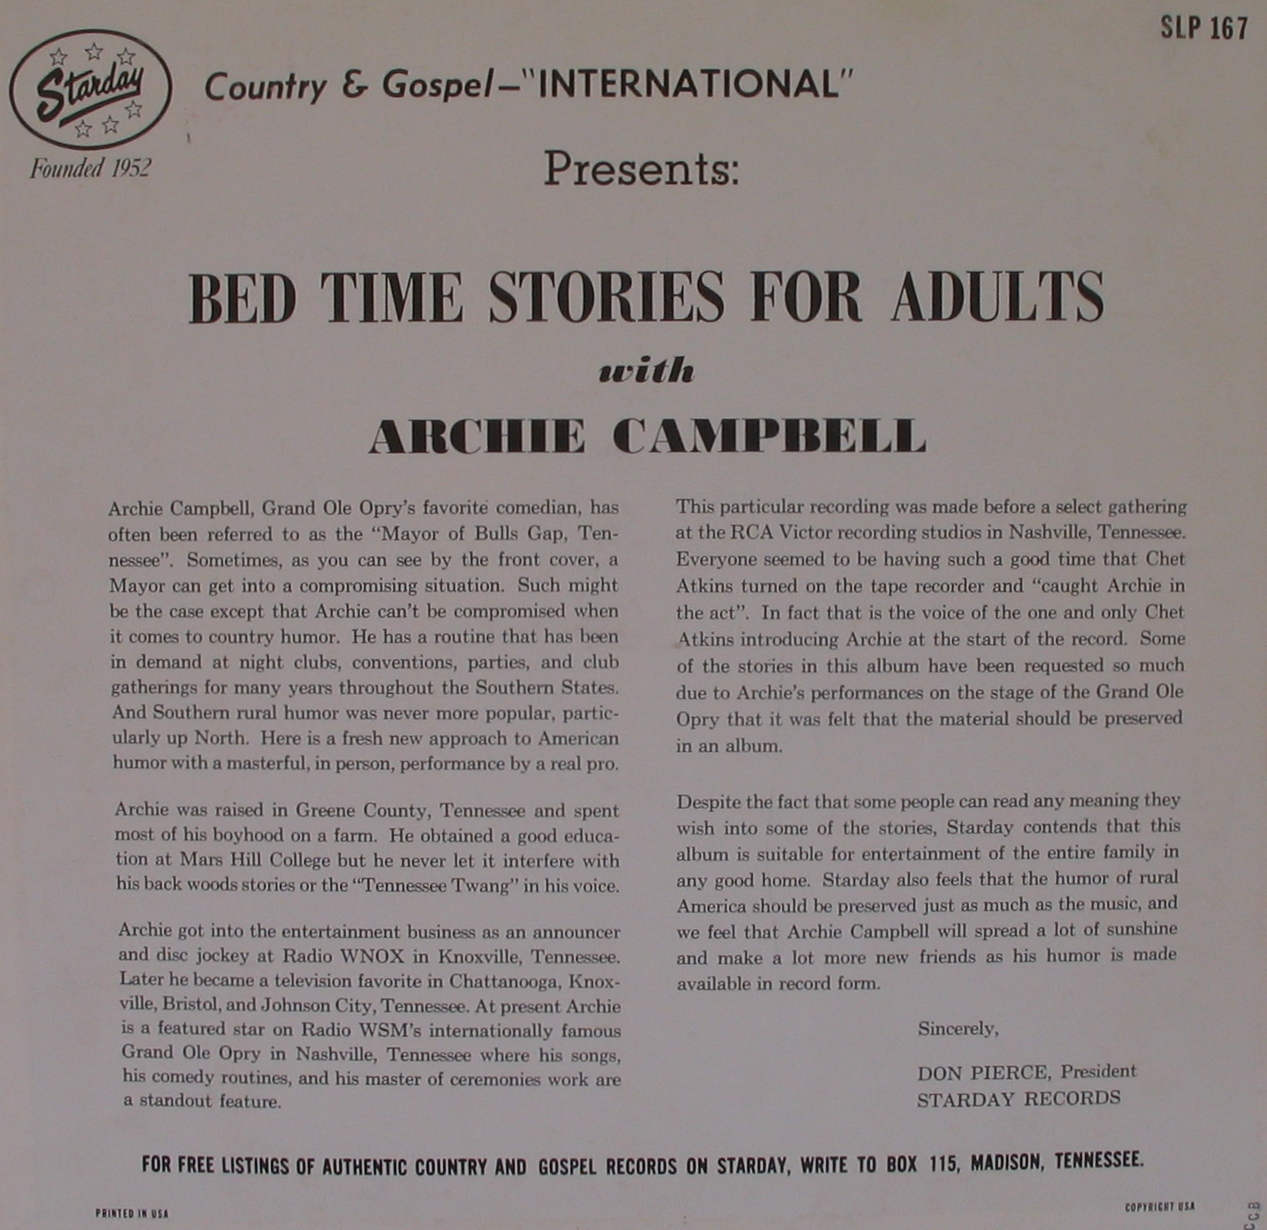 Bedroom story time for adults